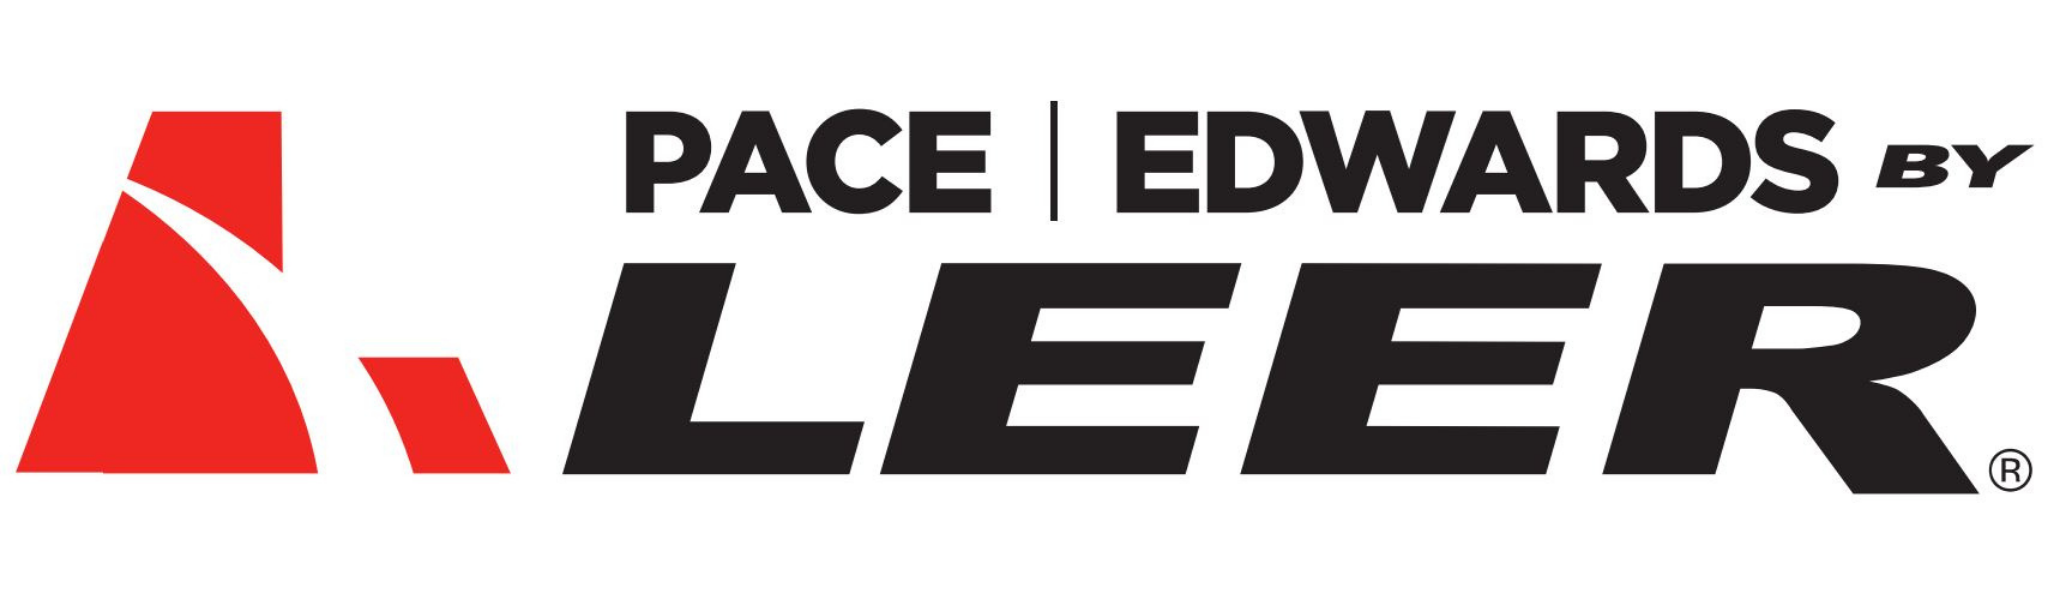 Pace Edwards by Leer Truck Bed Tonneau Covers